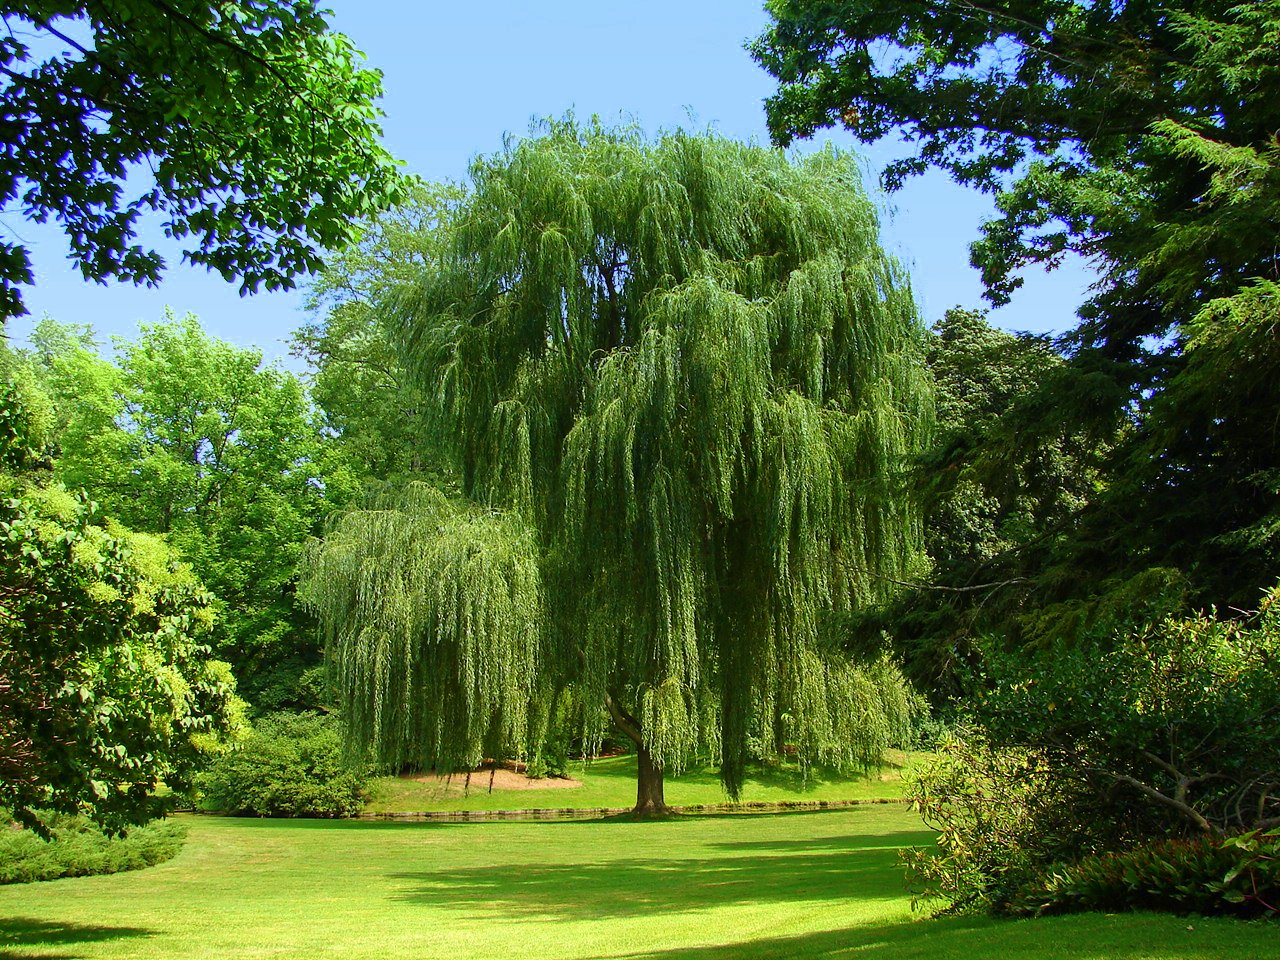 Weeping Willow Tree Wallpaper This gorgeous weeping willow 1280x960